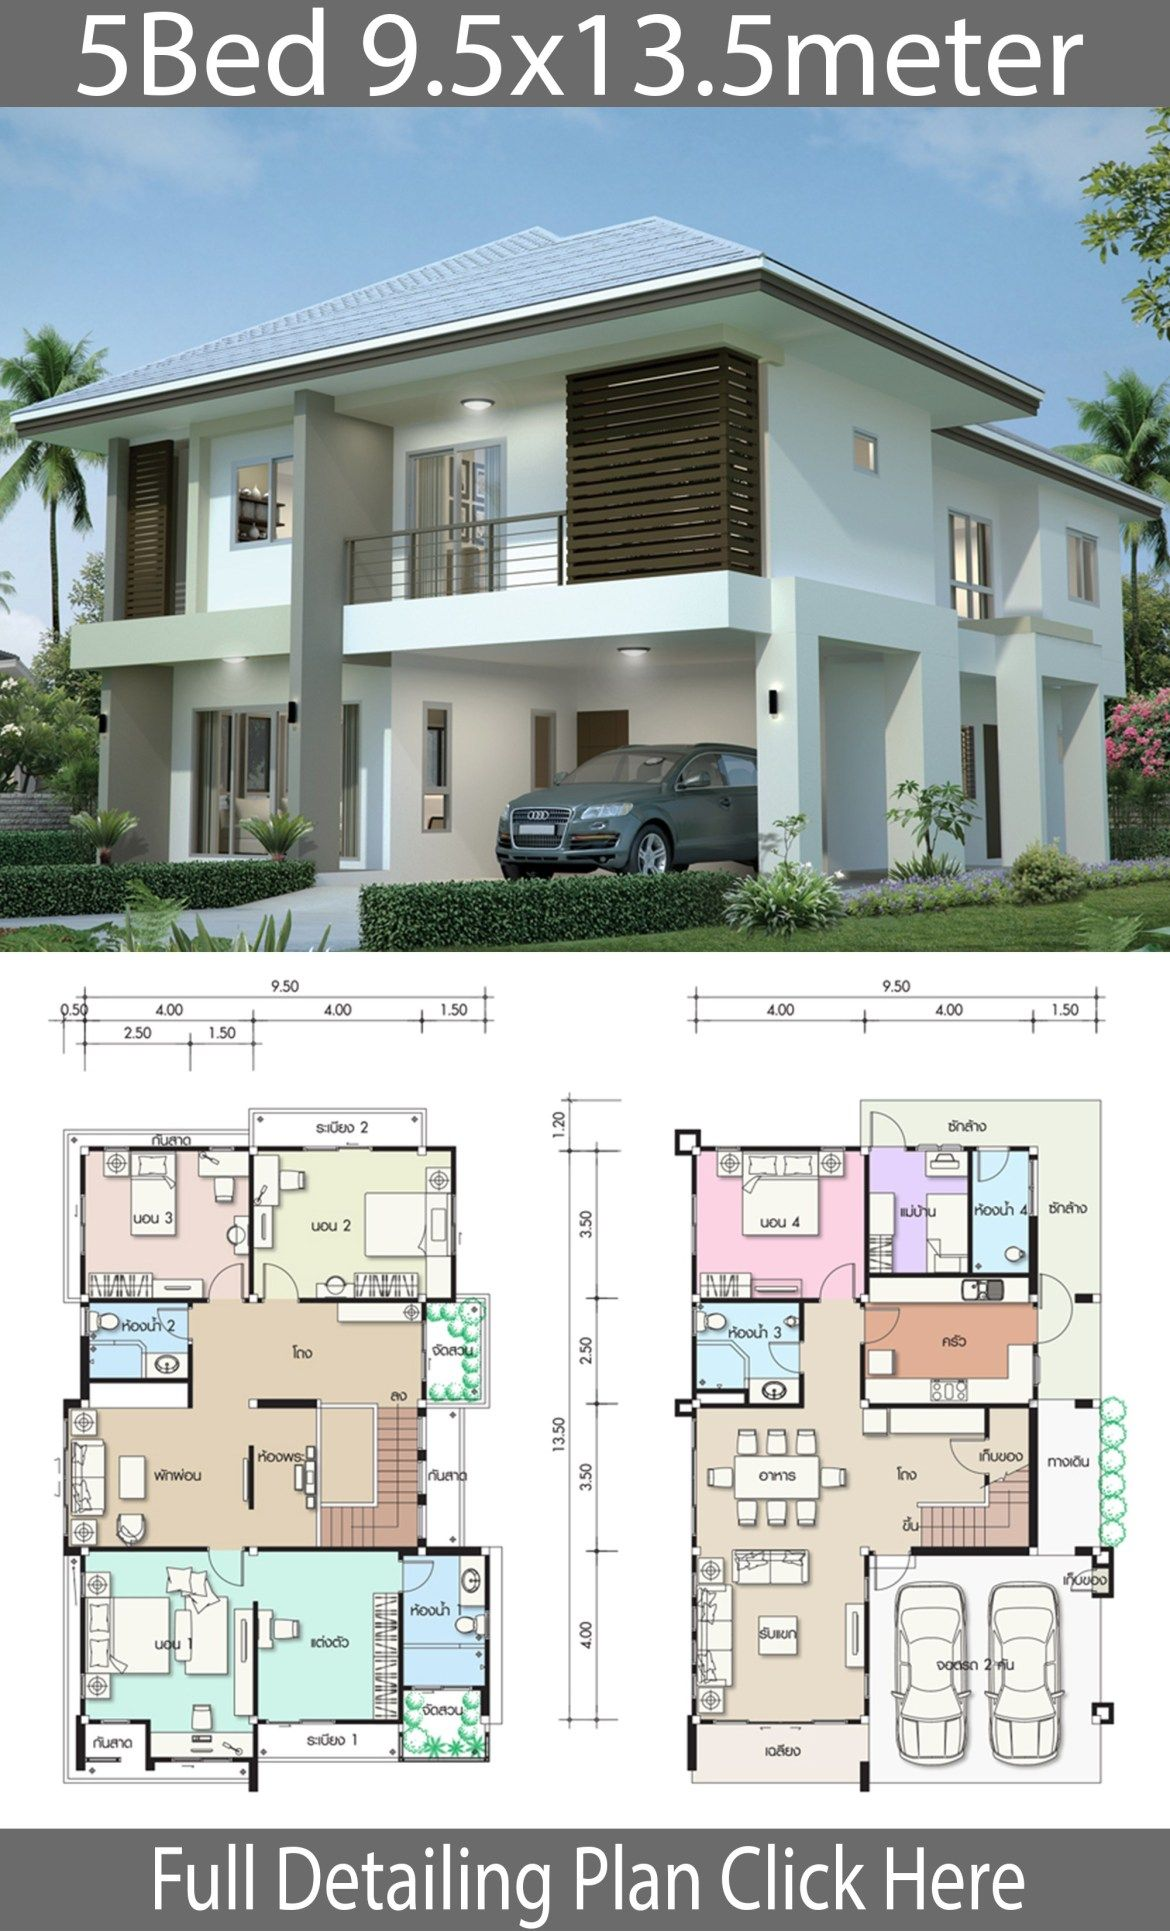 House Design Plan 9 5x13 5m With 5 Bedrooms Home Design With Plansearch House Front Design Model House Plan Architectural House Plans